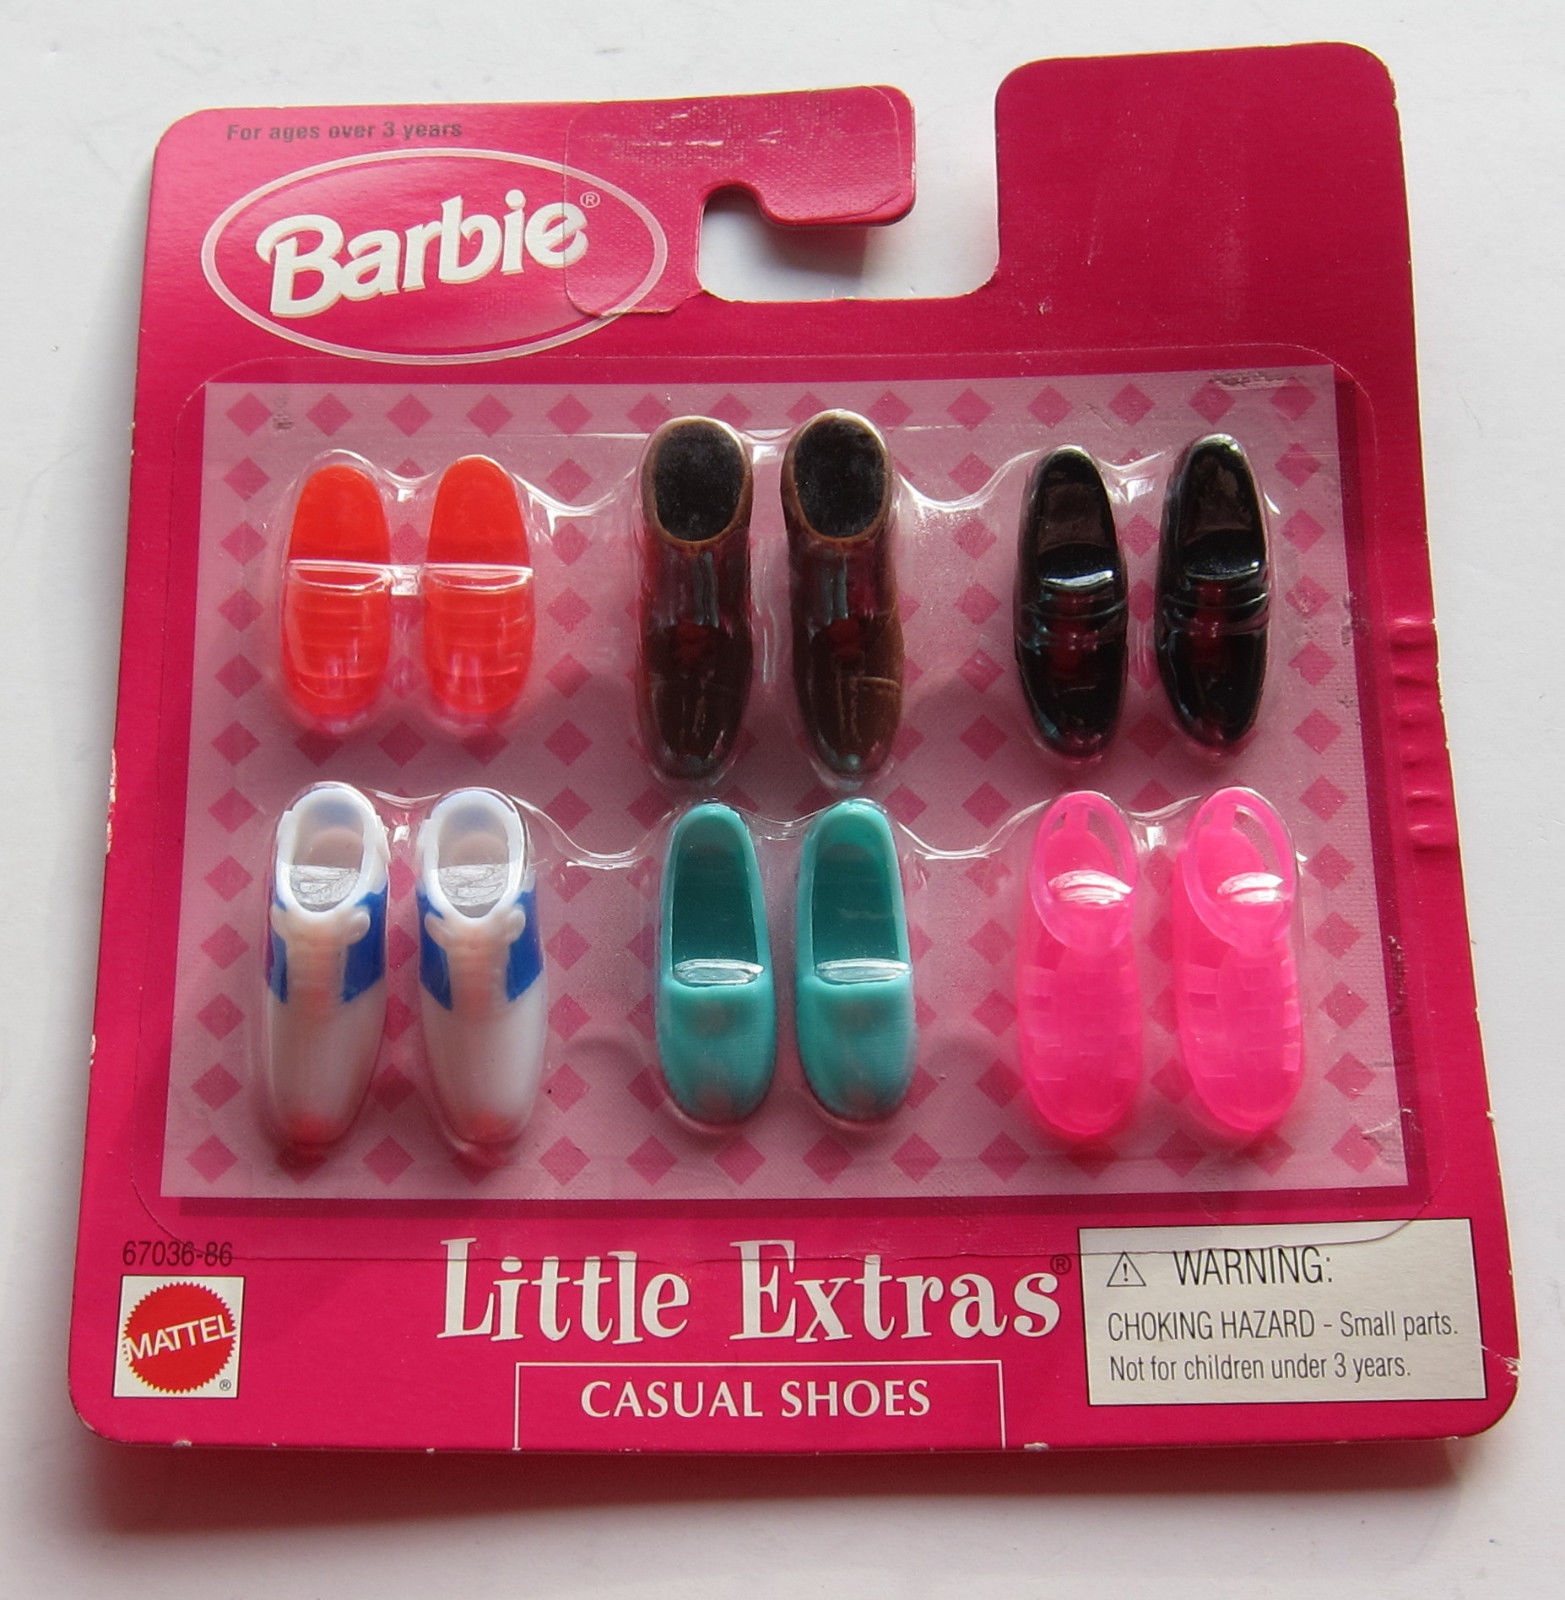 Primary image for Barbie Doll Little Extras Casual Shoes Pack 1998 NRFP Brown Boots White Loafers